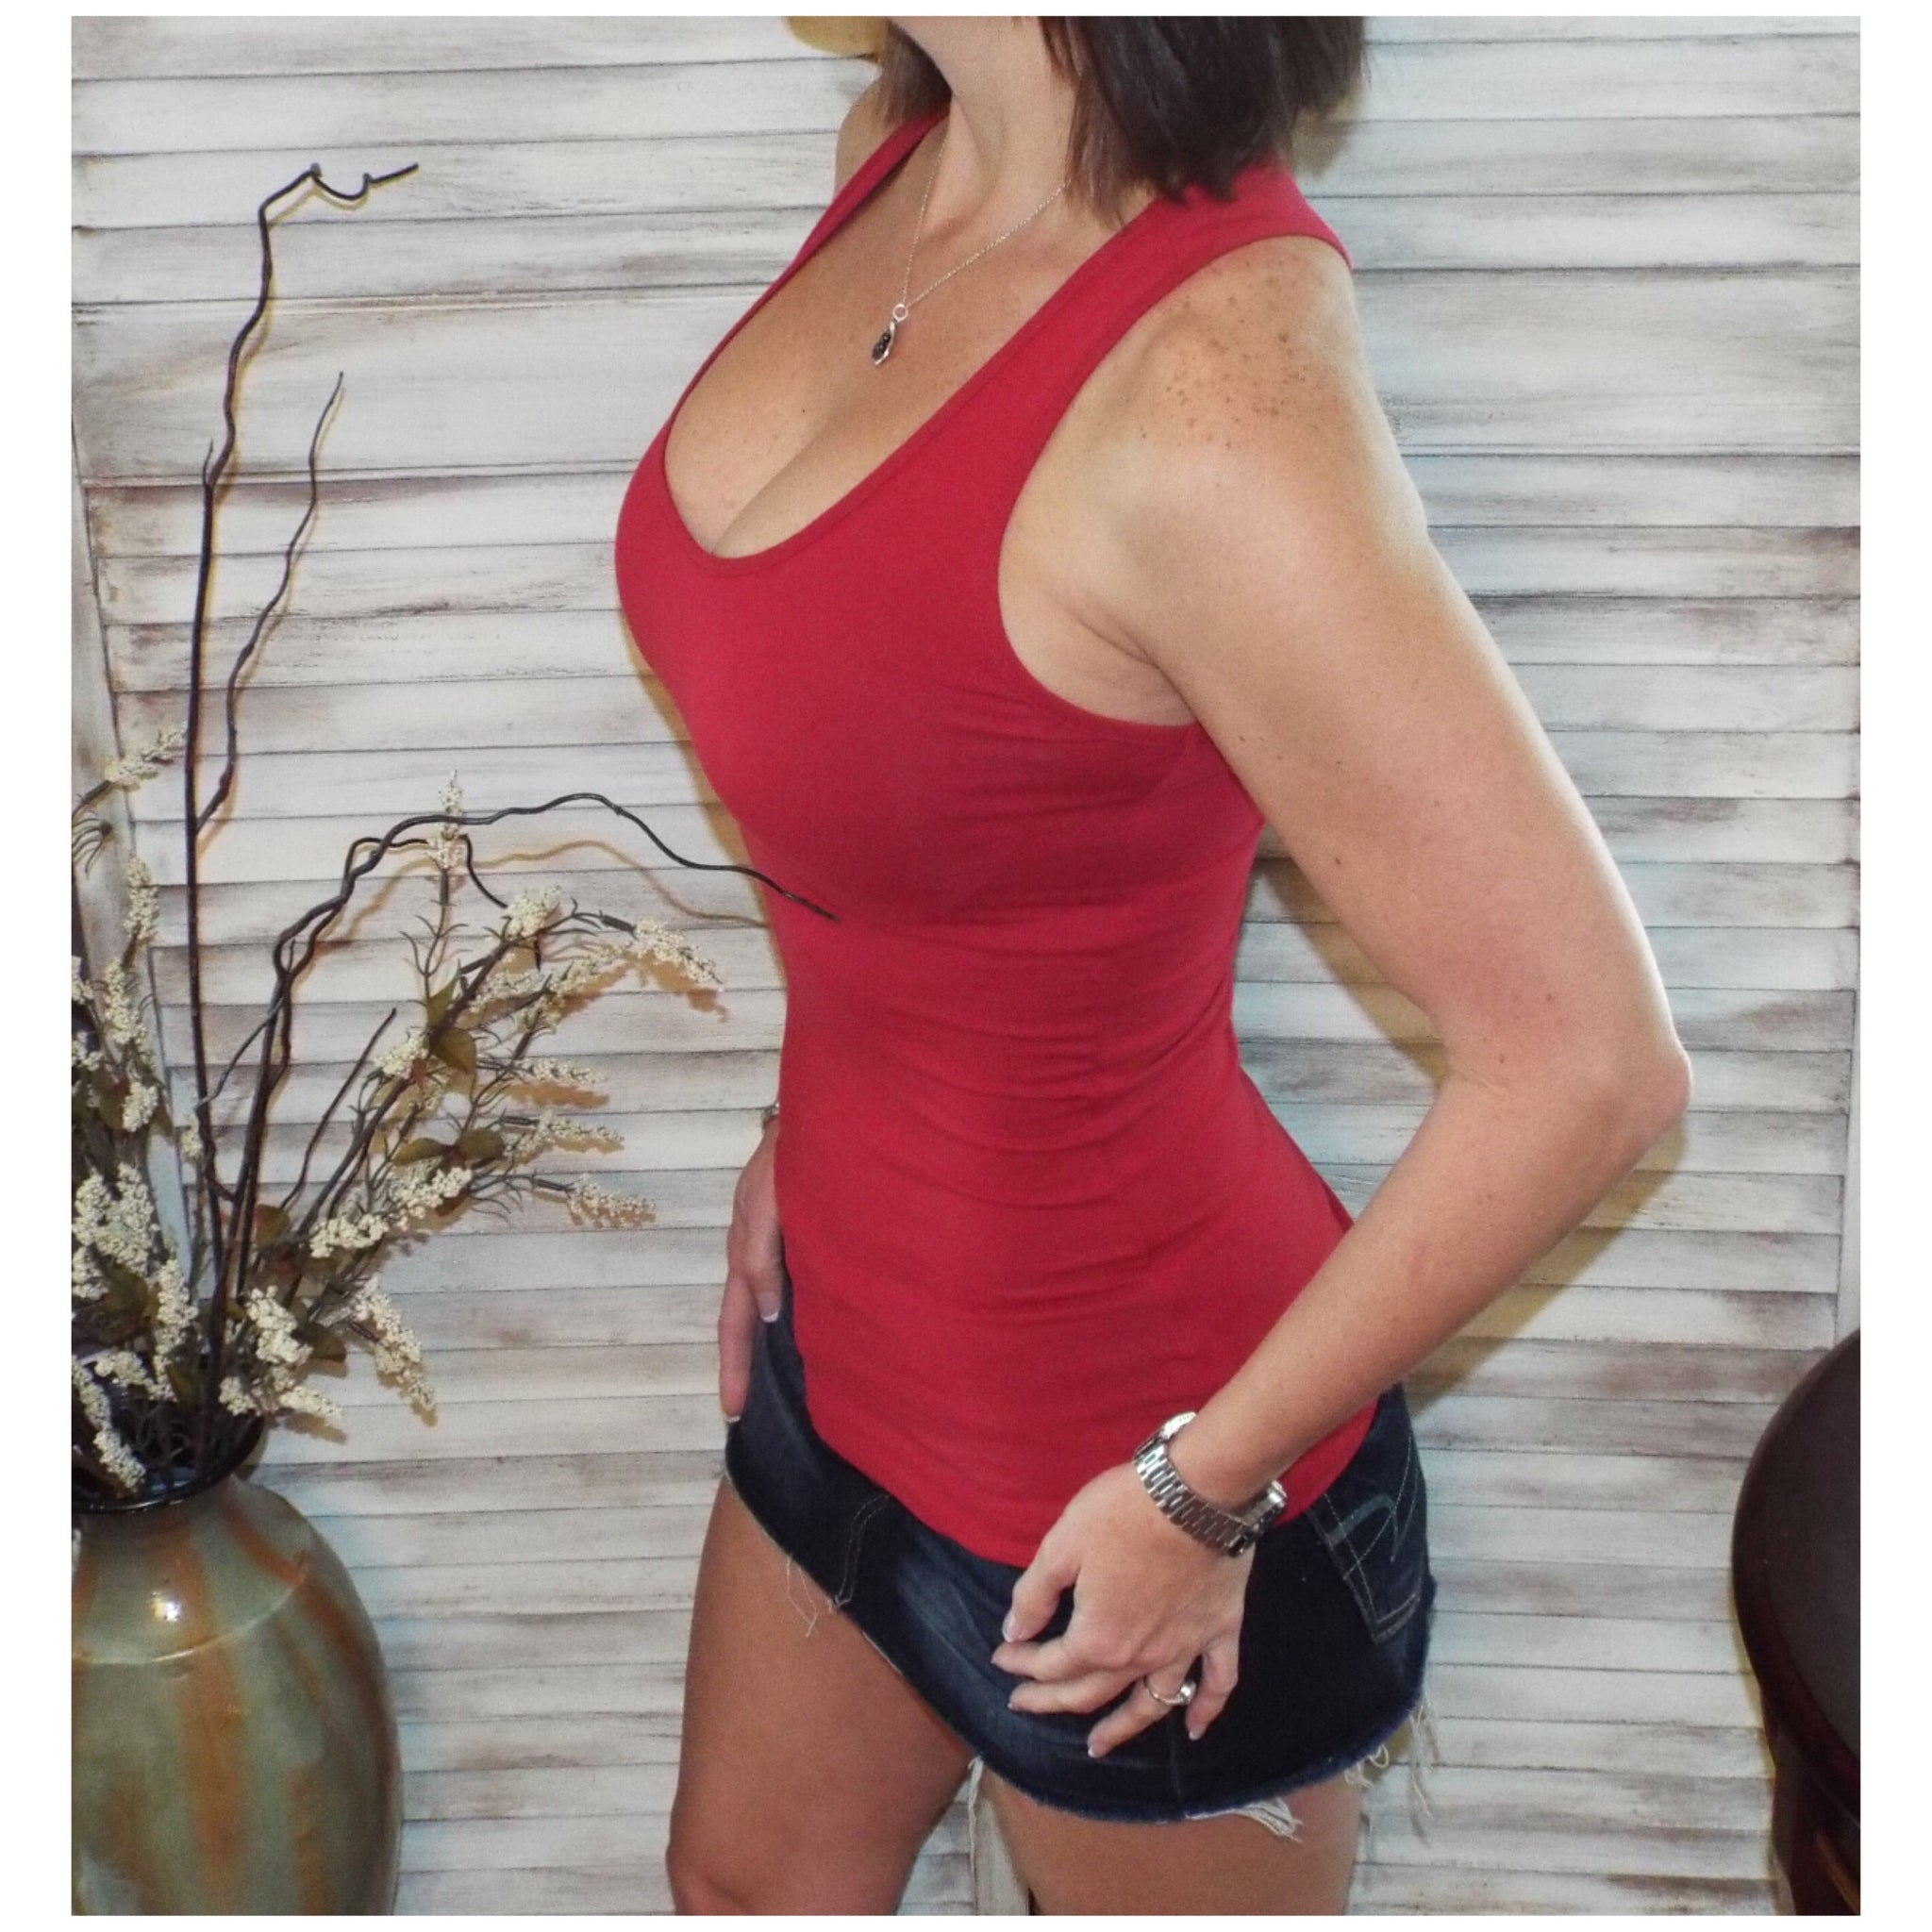 Very Sexy Low Scoop Boy Beater Cleavage Fitted Basic Tank Top Deep Red S/M/L